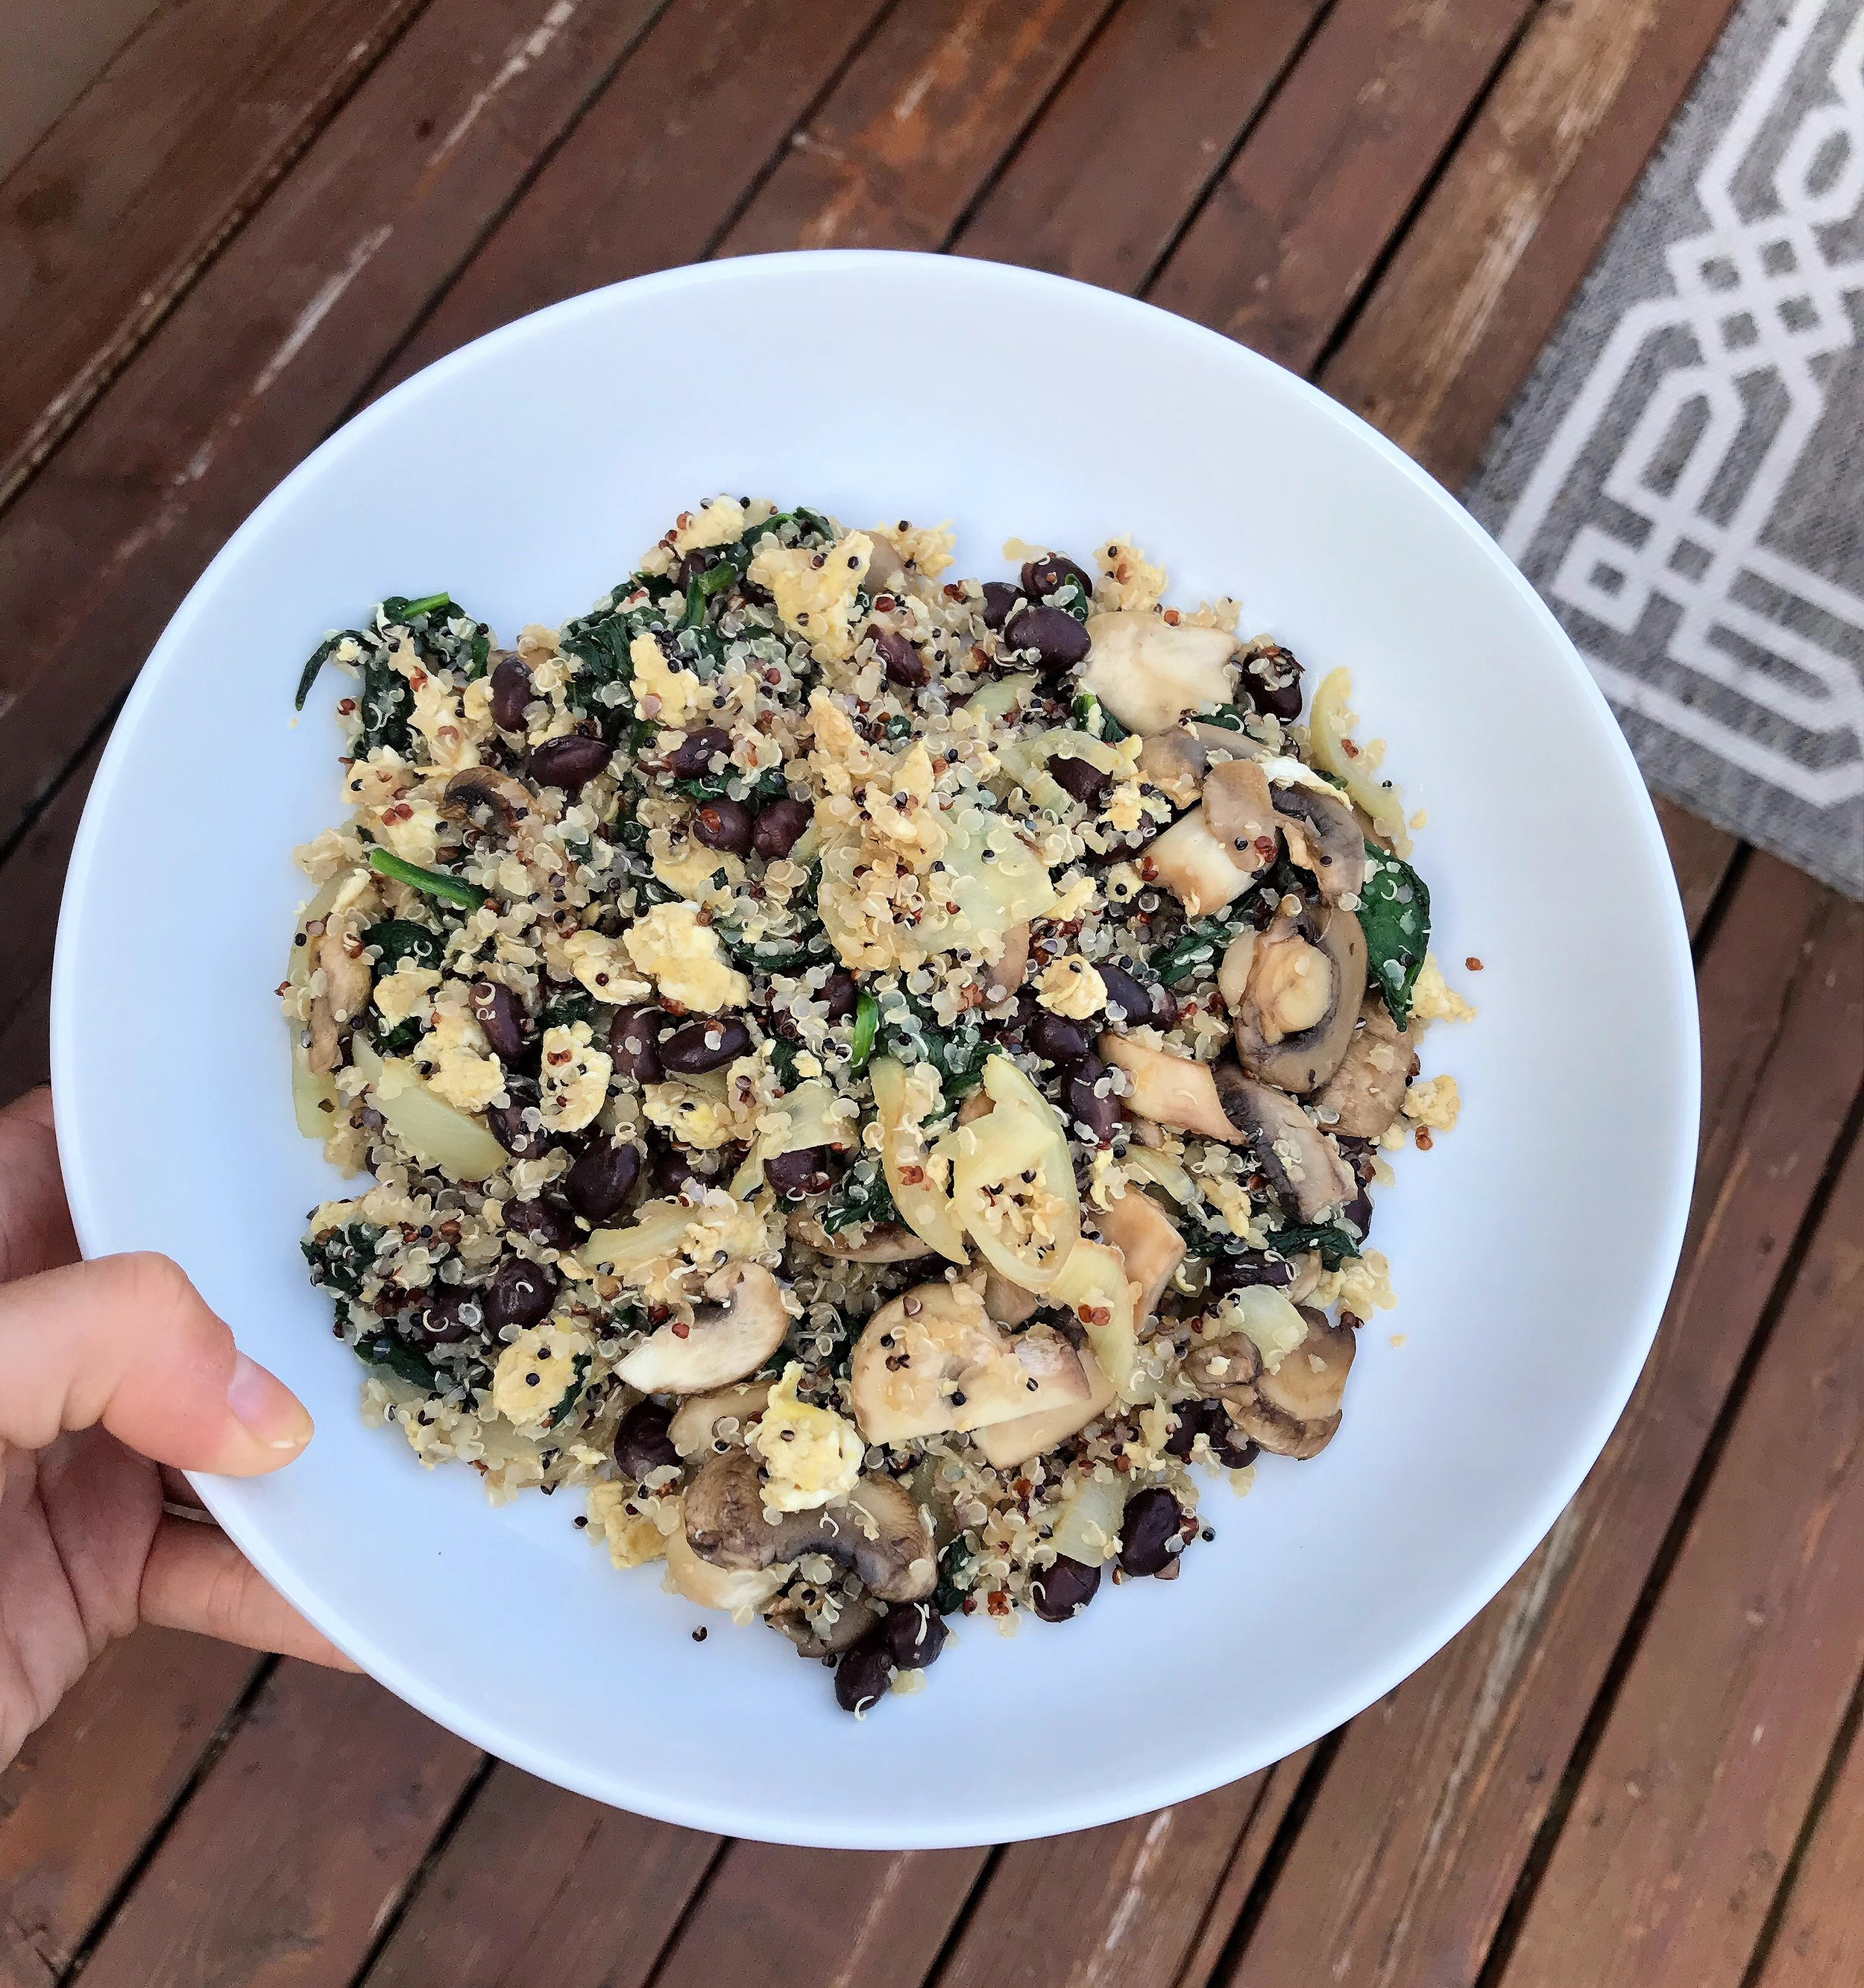 Quinoa Power Bowl - Rainbow quinoa + onions + spinach + egg + mushrooms + black beans + tamari soy sauceSauté onions and mushrooms in a medium sized pan. When lions become transparent move to the side of the pan and mix in 1-2 eggs. When the eggs are scrambled combine them with the mushrooms and onions. Add in spinach, black beans, quinoa, and seasoning with tamari soy sauce!